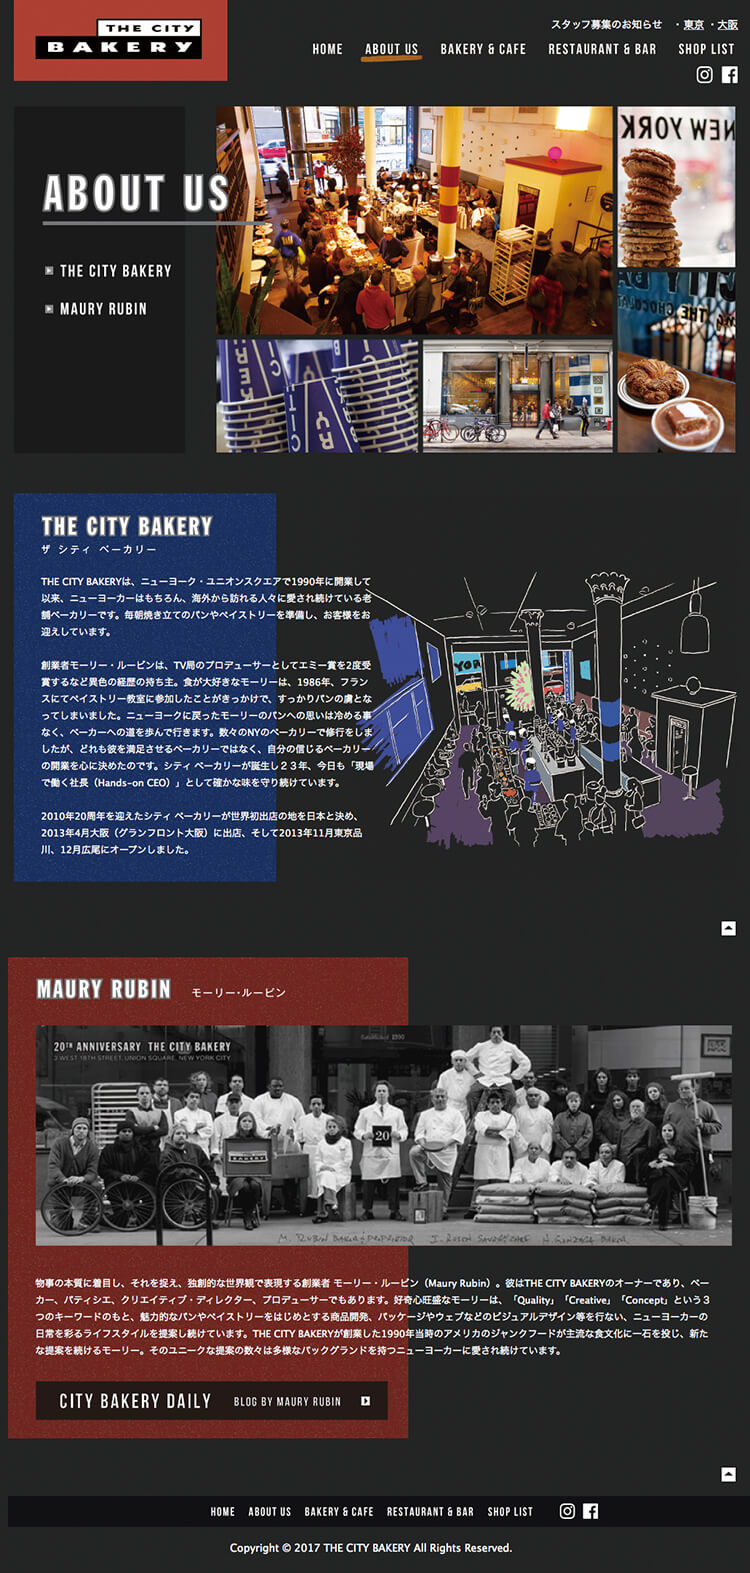 THE CITY BAKERY WEB SITEのデザイン